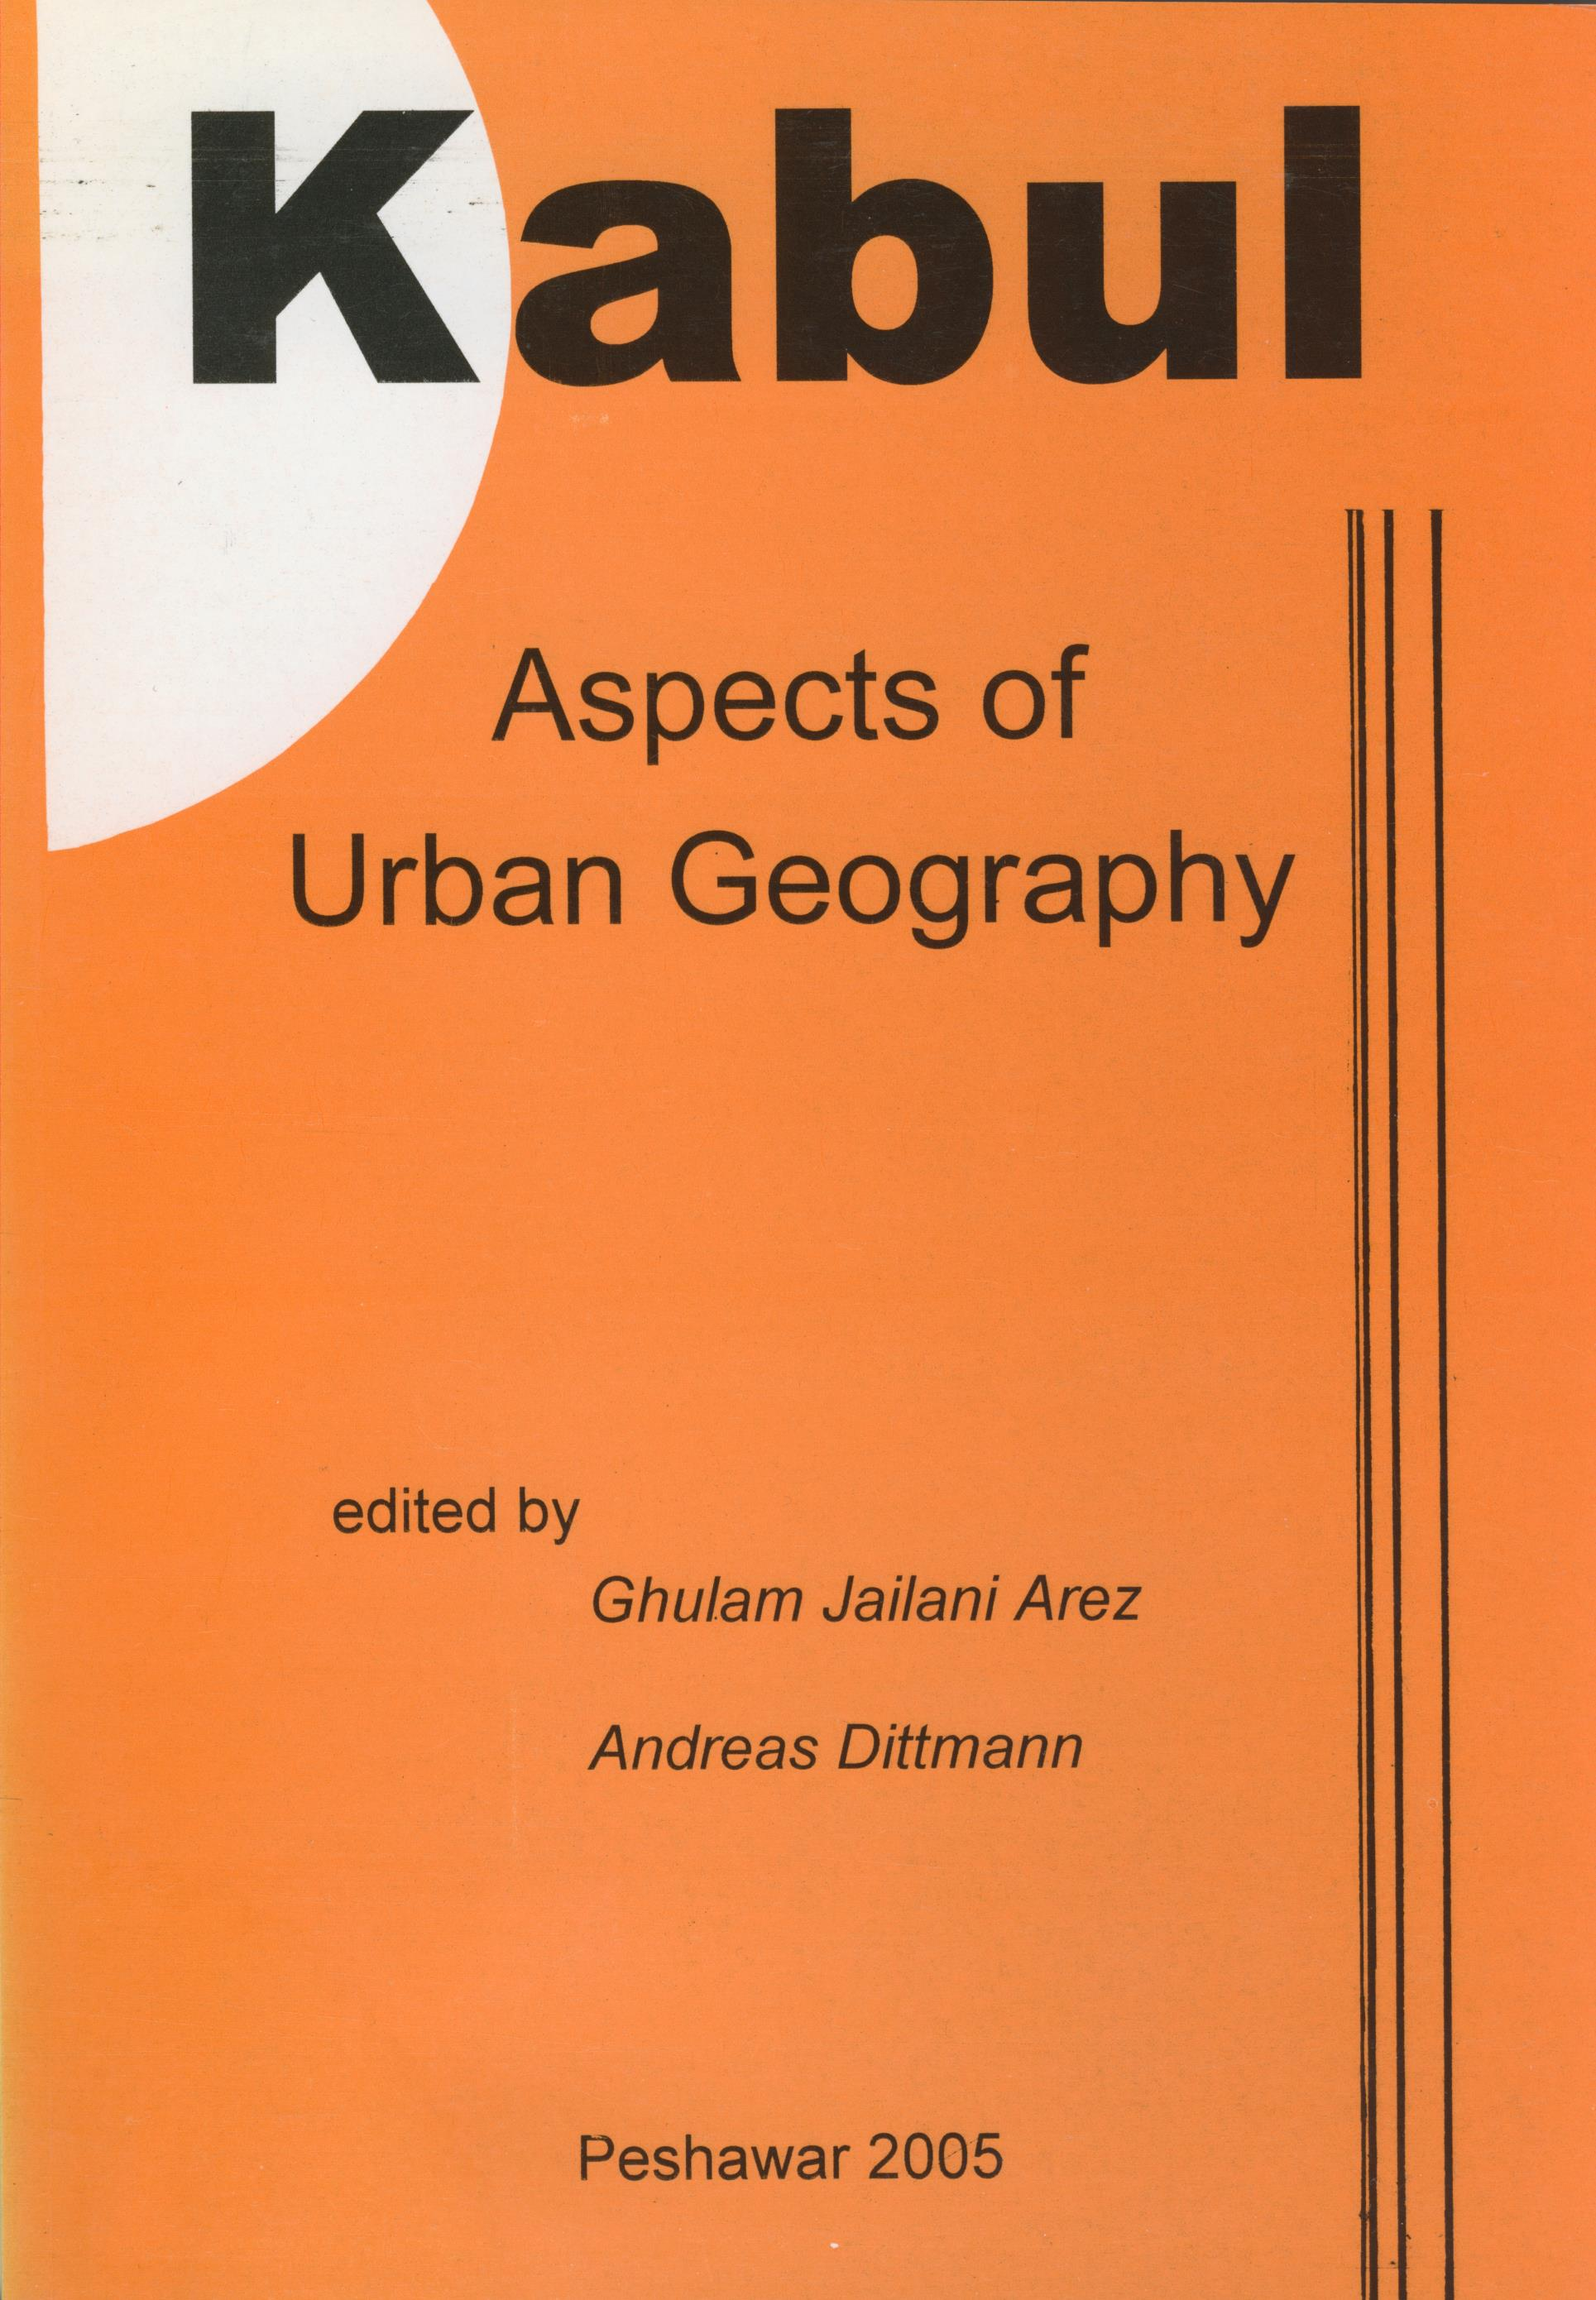 kabul aspects of urban geography cover